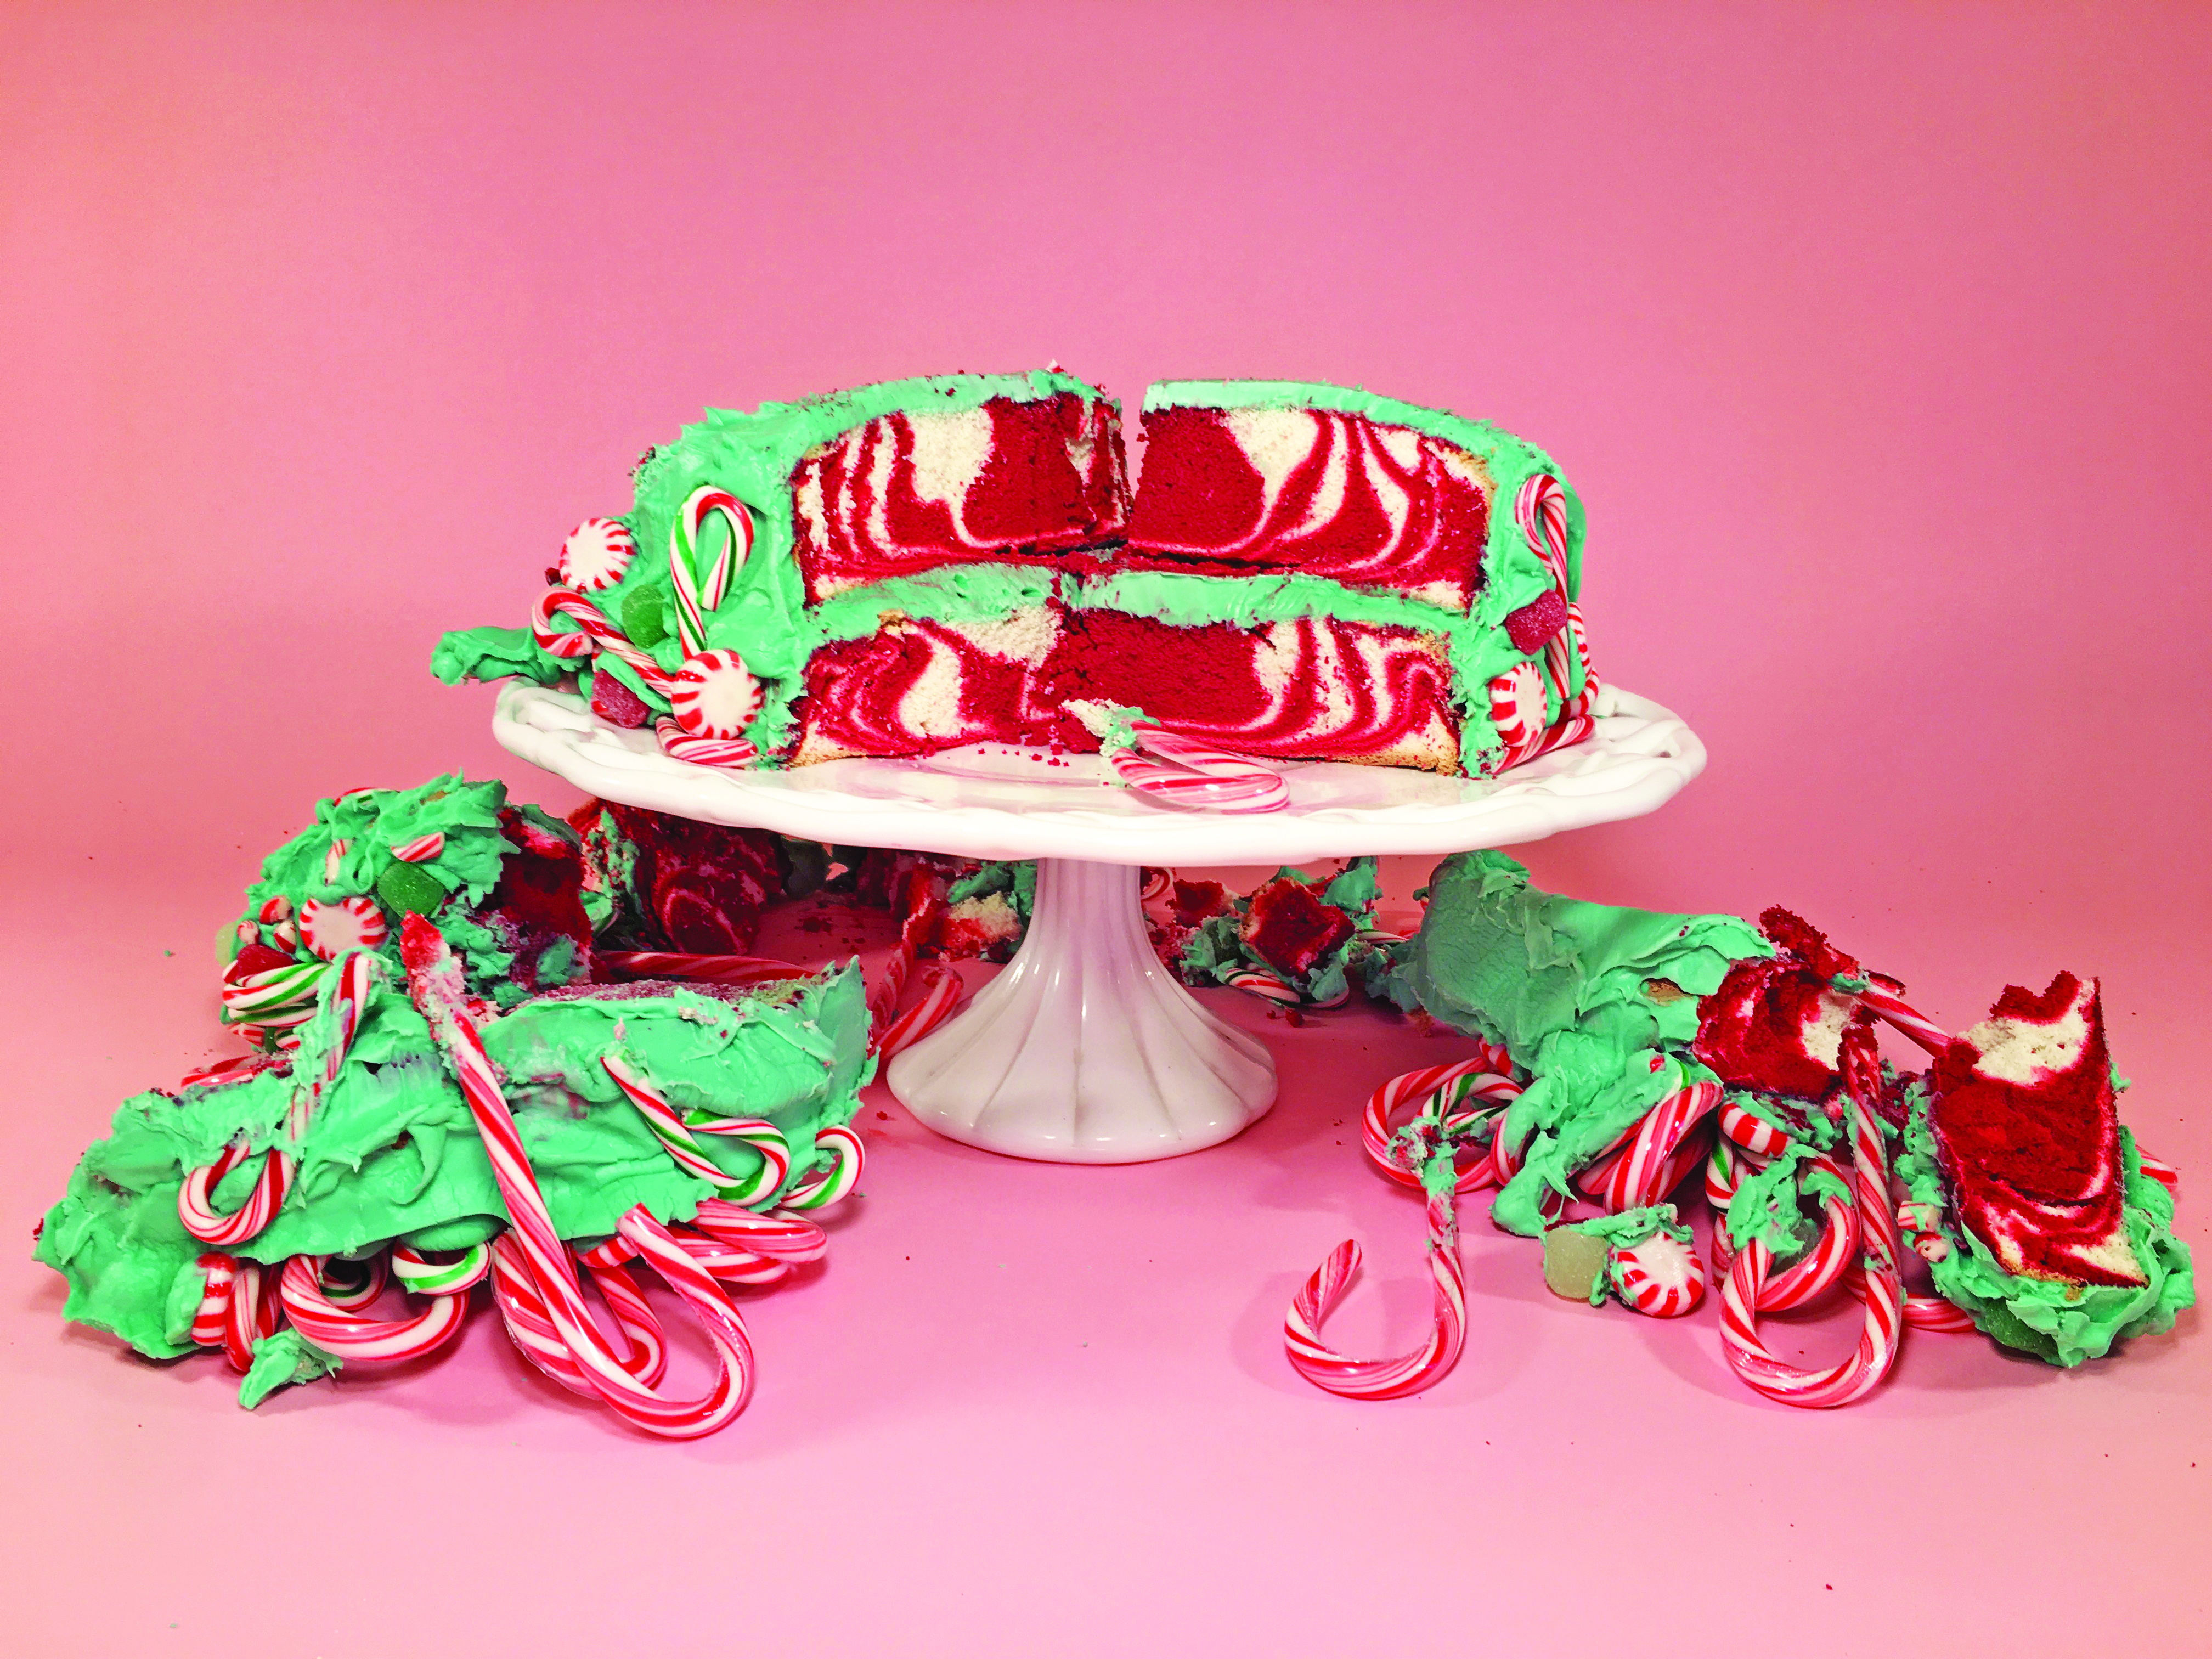 Inside the candy cane cake